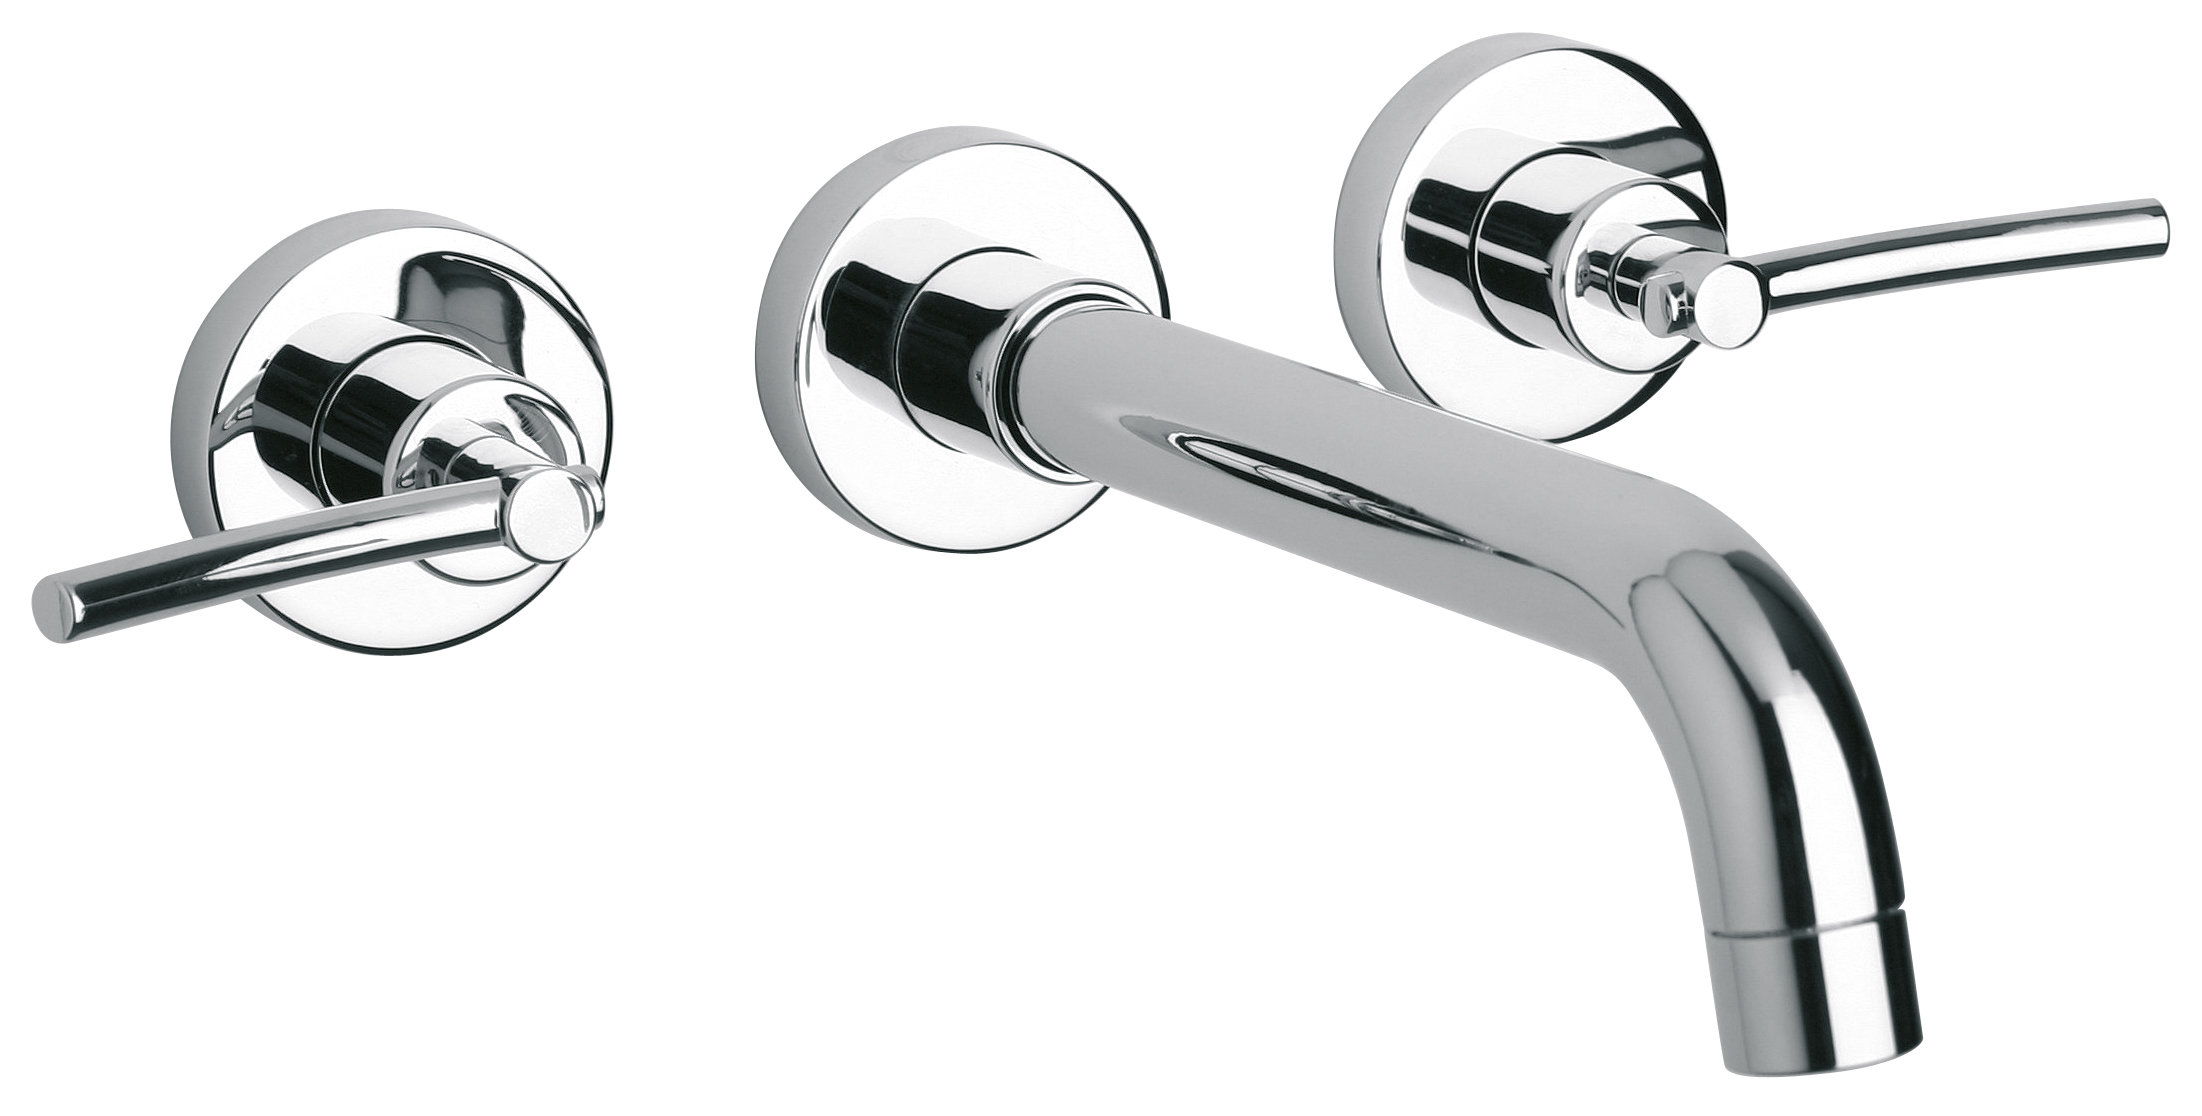 Wall-mount Lavatory Faucet with Lever Handles in Chrome